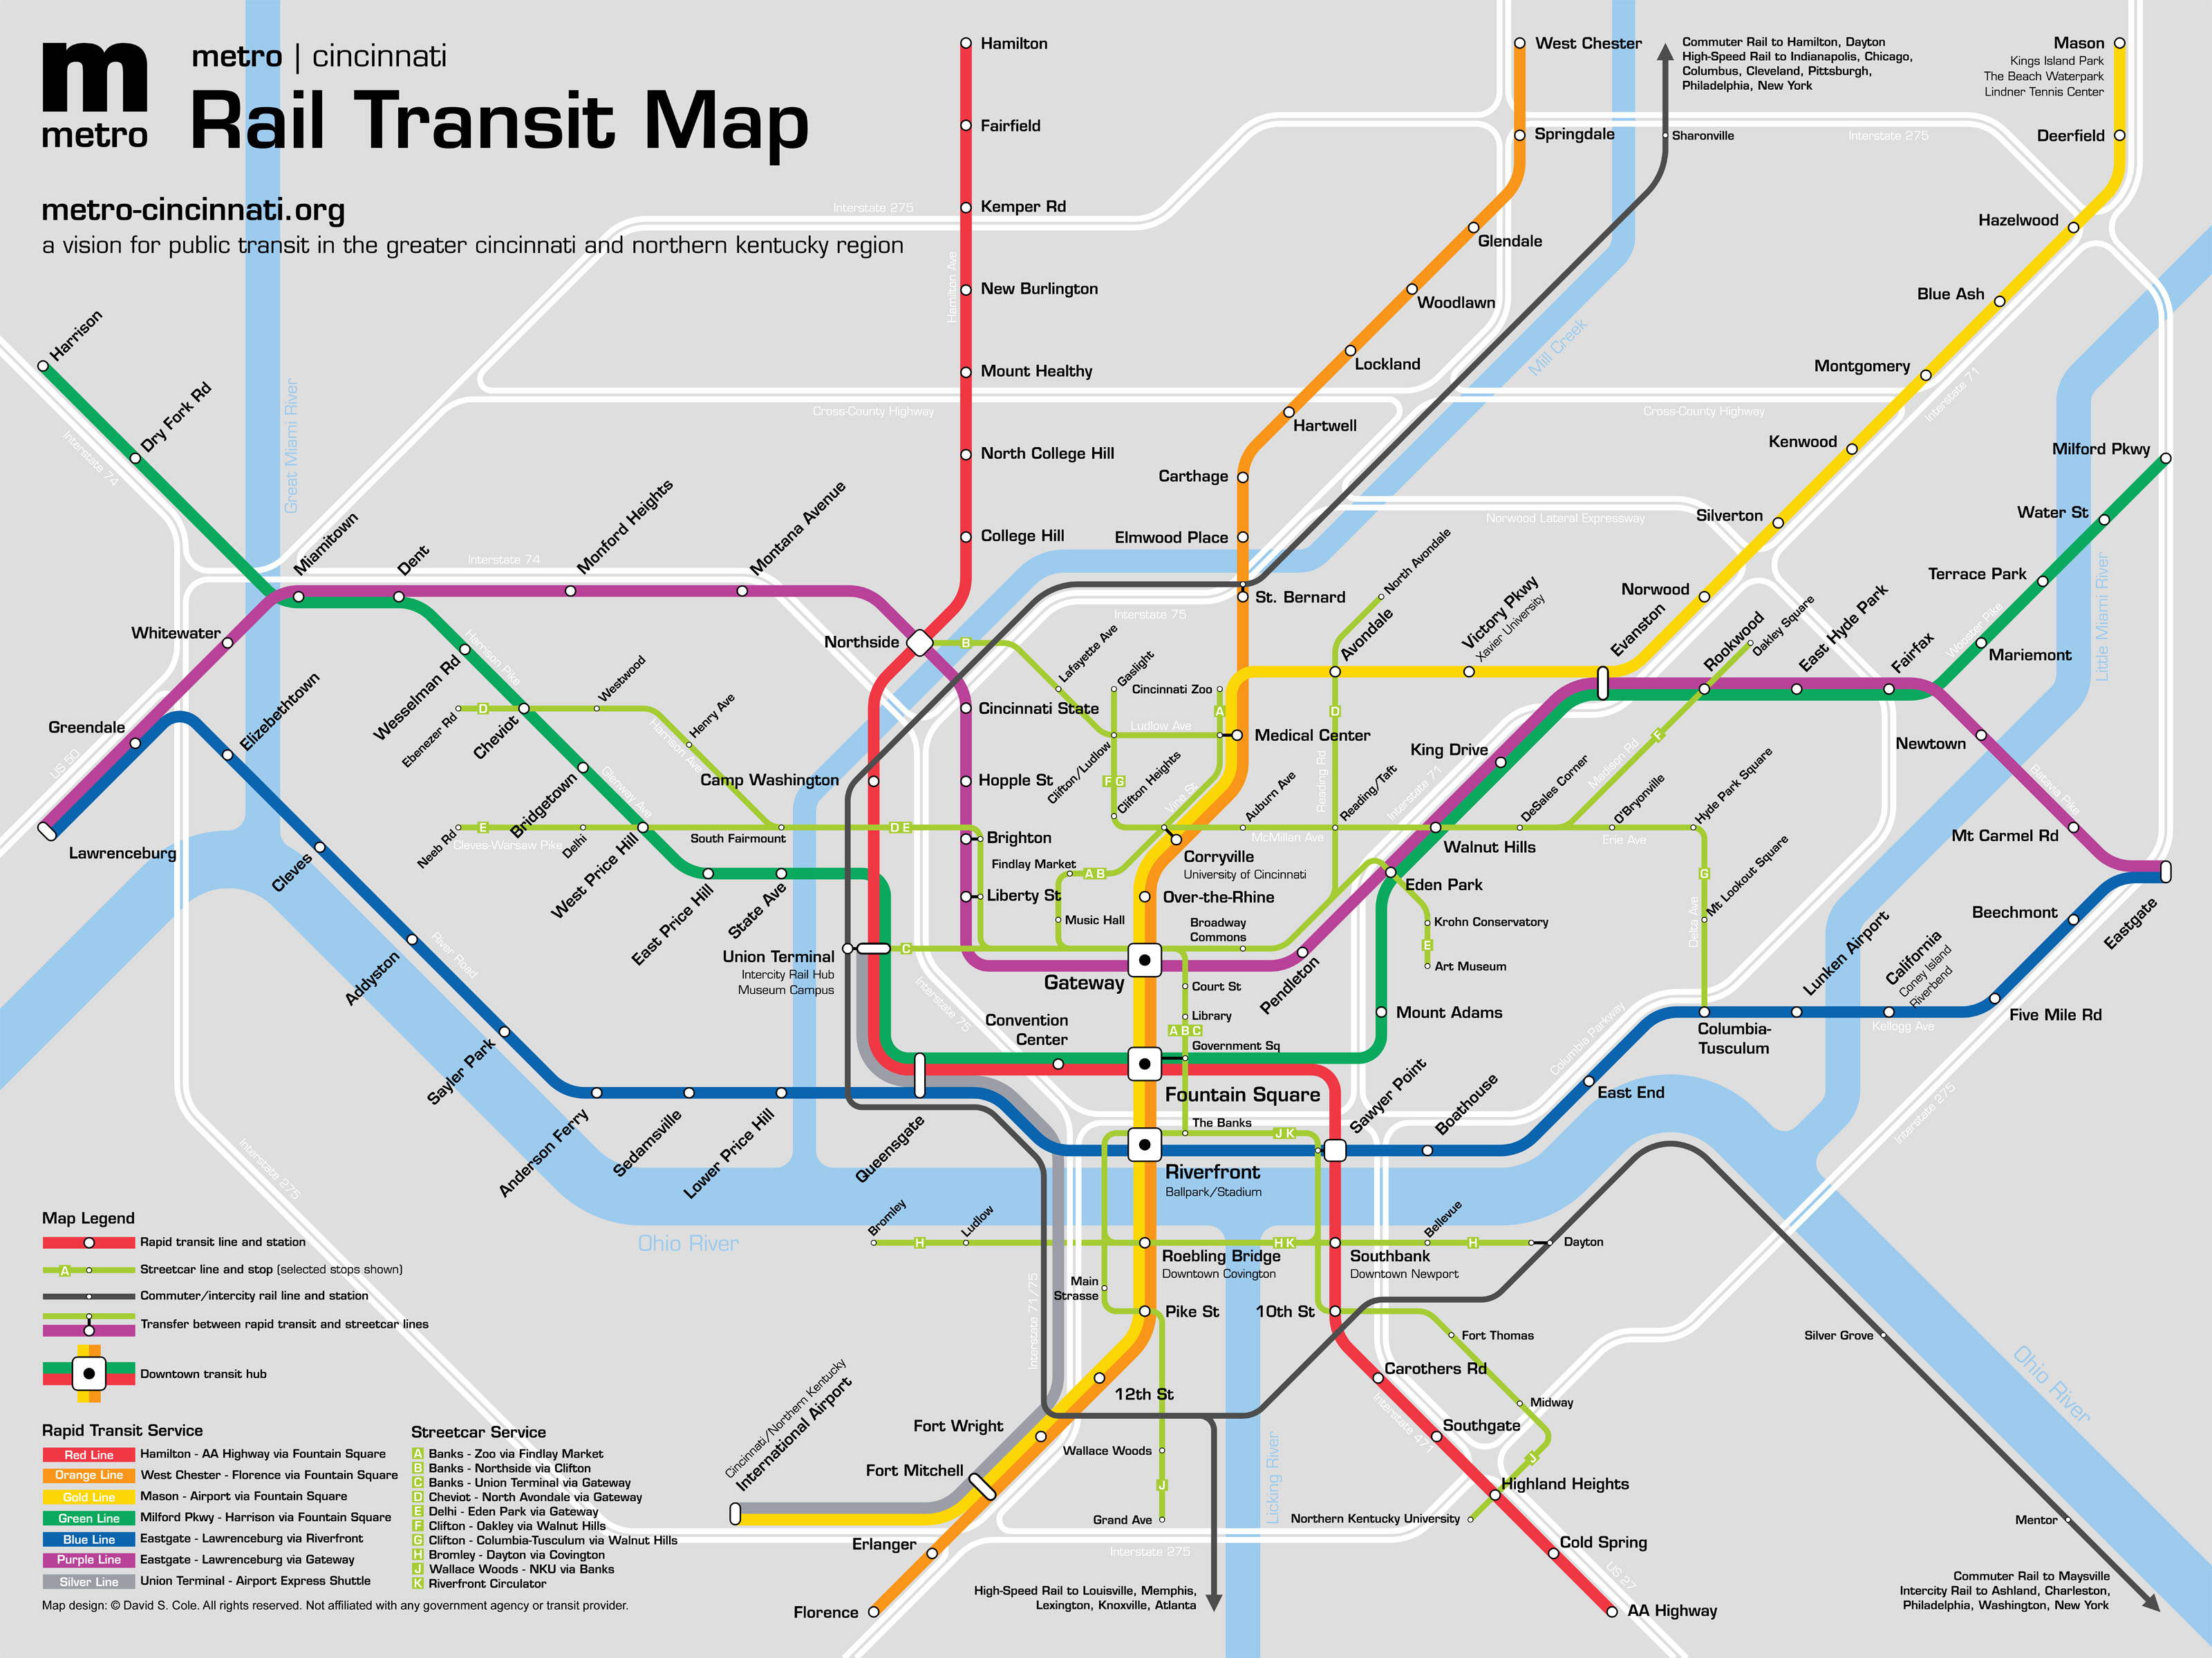 houston metro rail expansion with Usersdscole312projects0901 00 Metro Cincinnatiroutes And Ma on Train Simulator Route Proposal Rtd likewise San Diego Plans Extension To Its Trolley  work Mostly Skipping Over Inner City further Paris also L1 p5 moreover Cincinnati Light Rail.